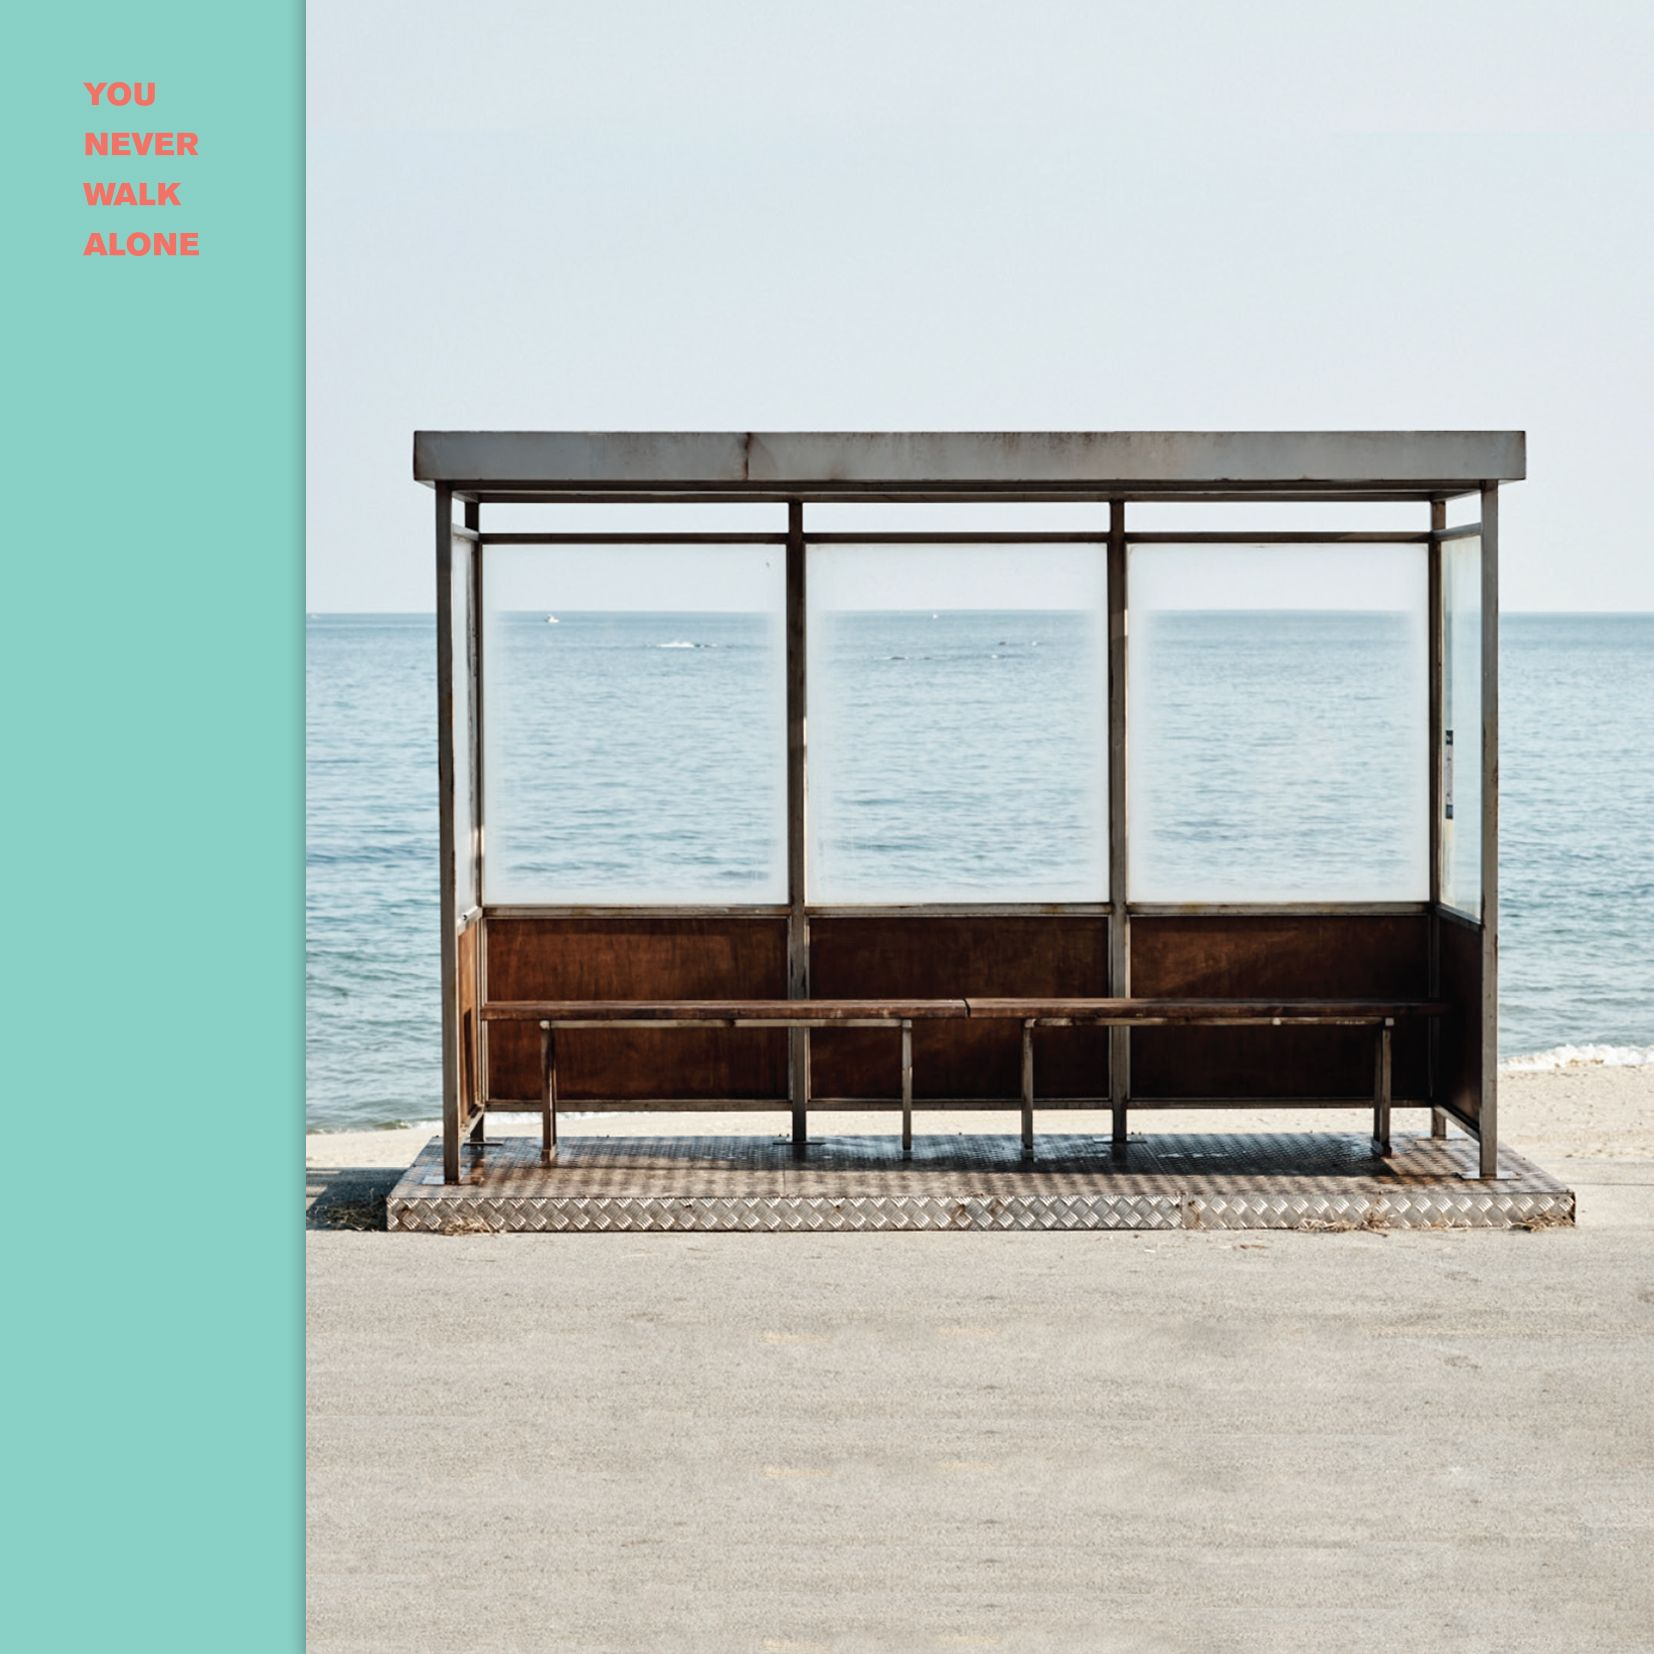 BTS (Bangtan Boys) - WINGS: You Never Walk Alone (Full Album) K2Ost free mp3 download korean song kpop kdrama ost lyric 320 kbps